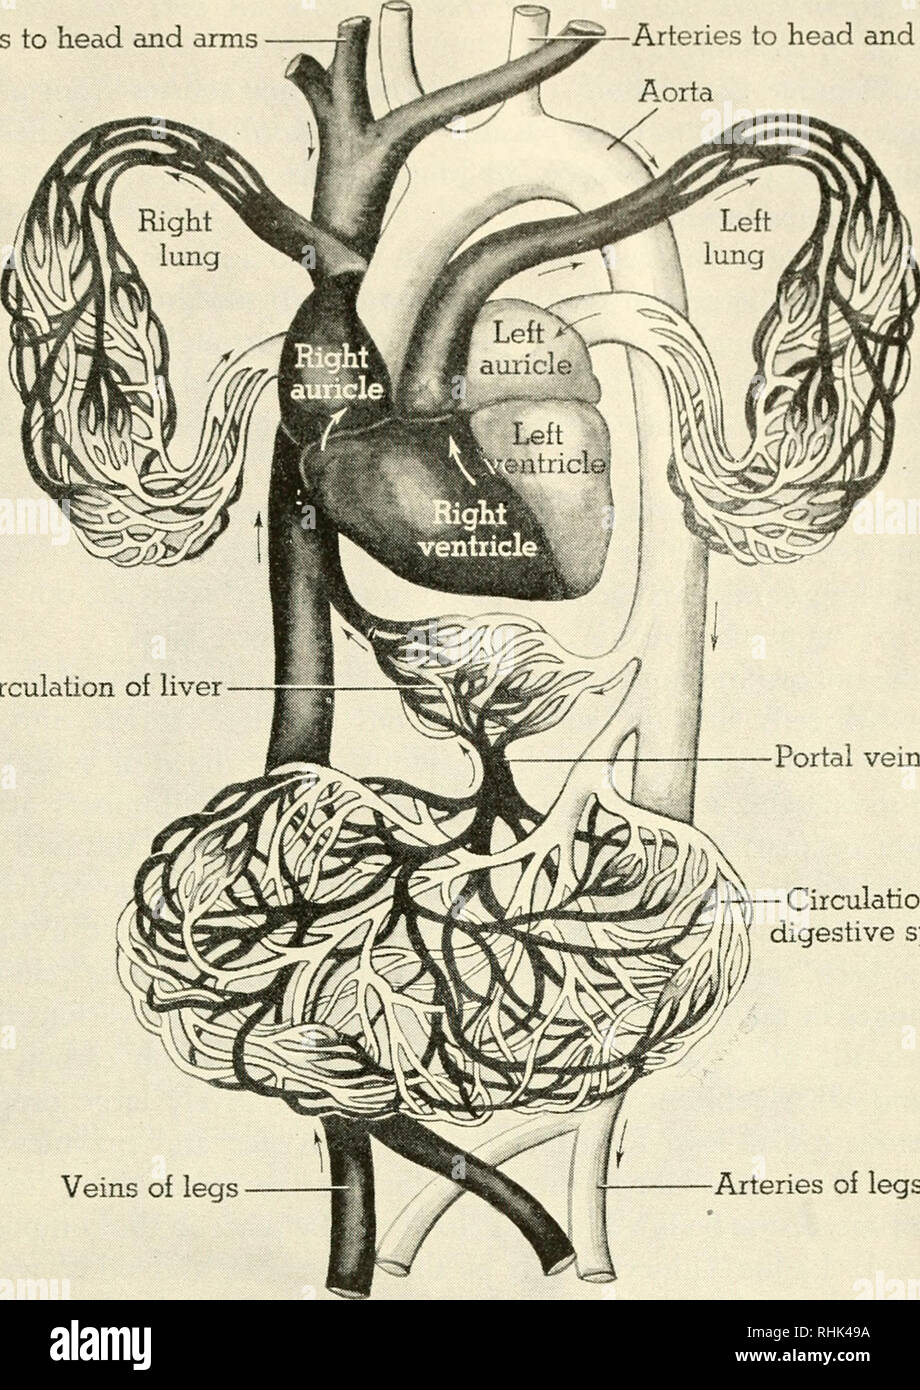 Biology And Man Biology Human Beings Veins To Head And Arms